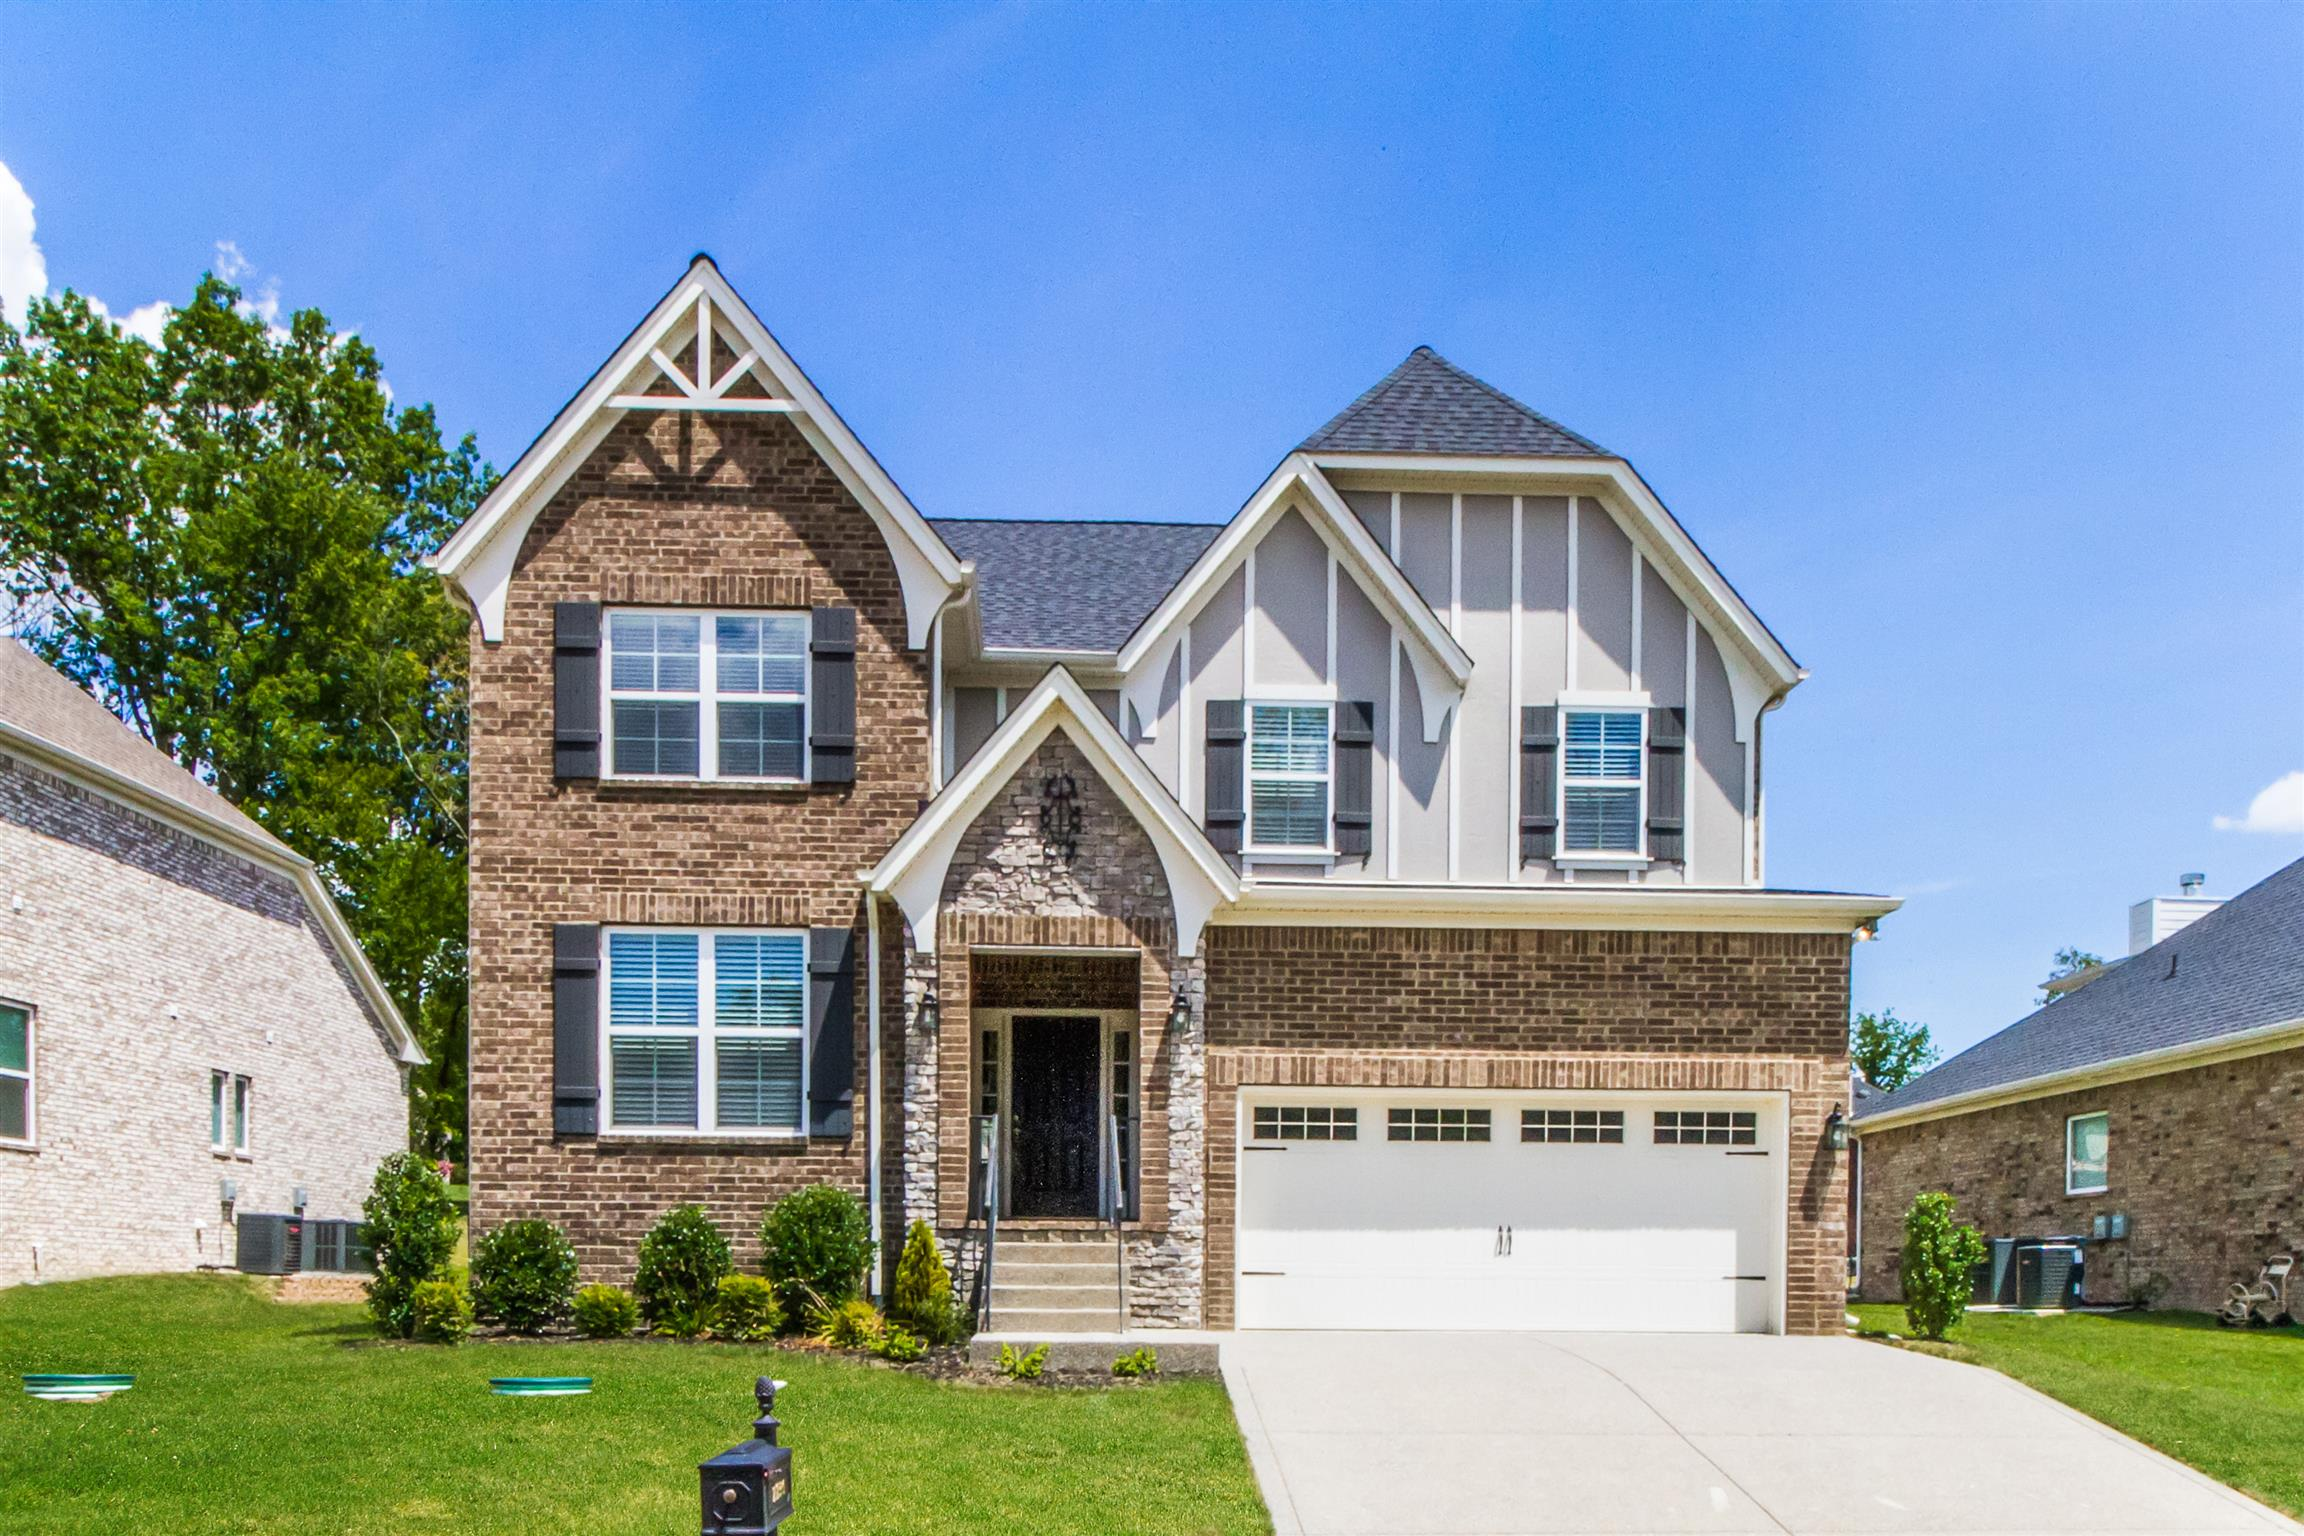 2236 Arbor Pointe Way, Hermitage, Tennessee